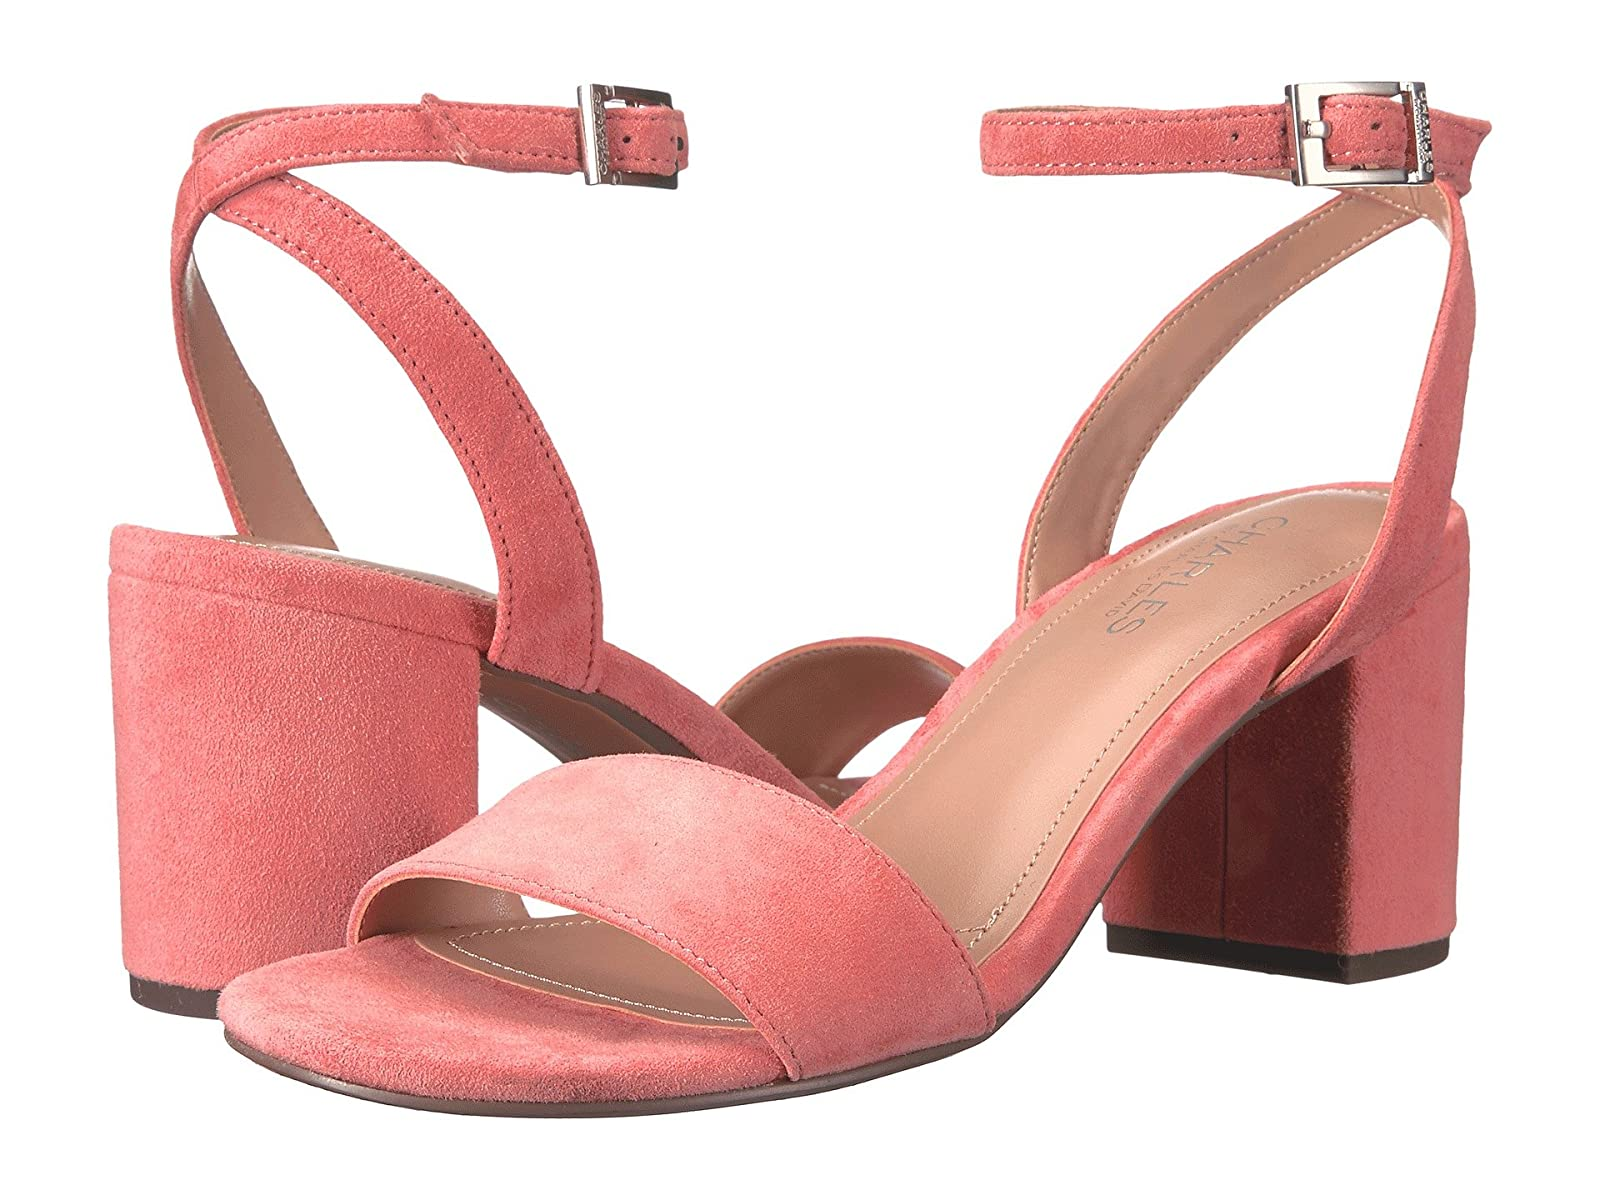 Charles by Charles David KeenanCheap and distinctive eye-catching shoes